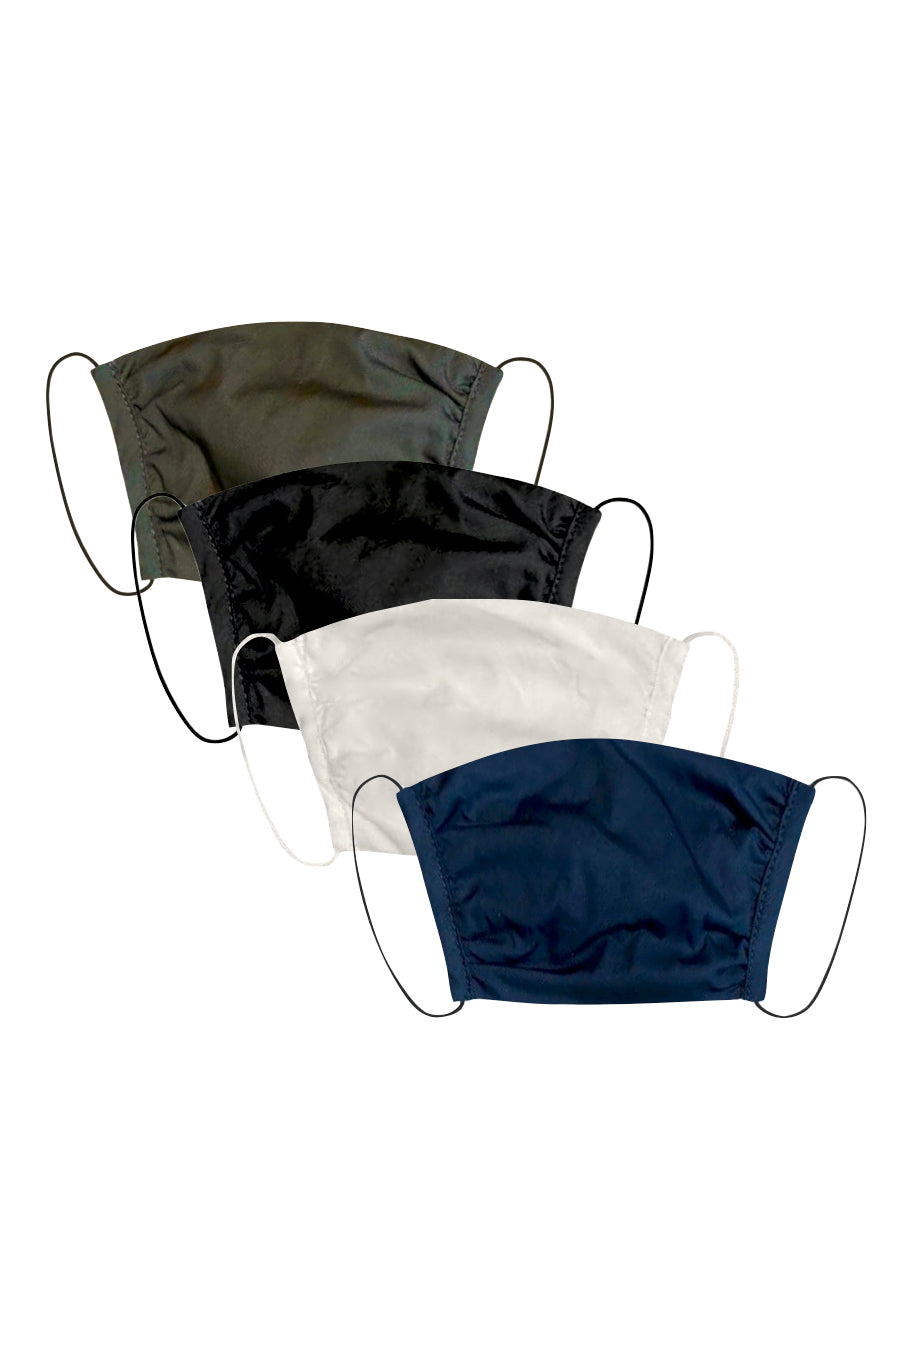 KES Peace Face Covering - Triple Layer Cotton Basic Bundle (4 in 1 Pack)